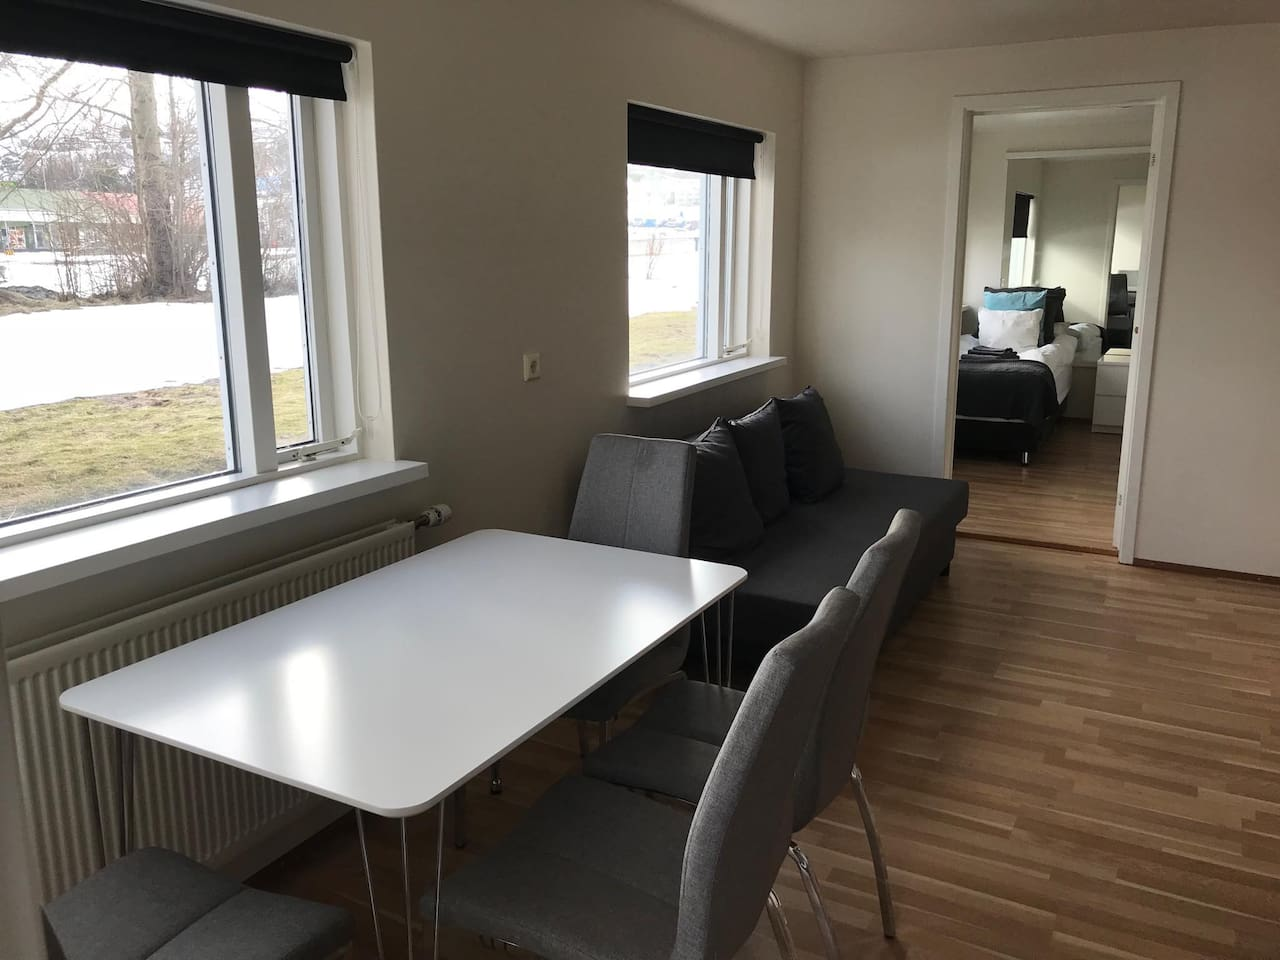 Sofa bed, dining table and a glimpse to one bedroom.